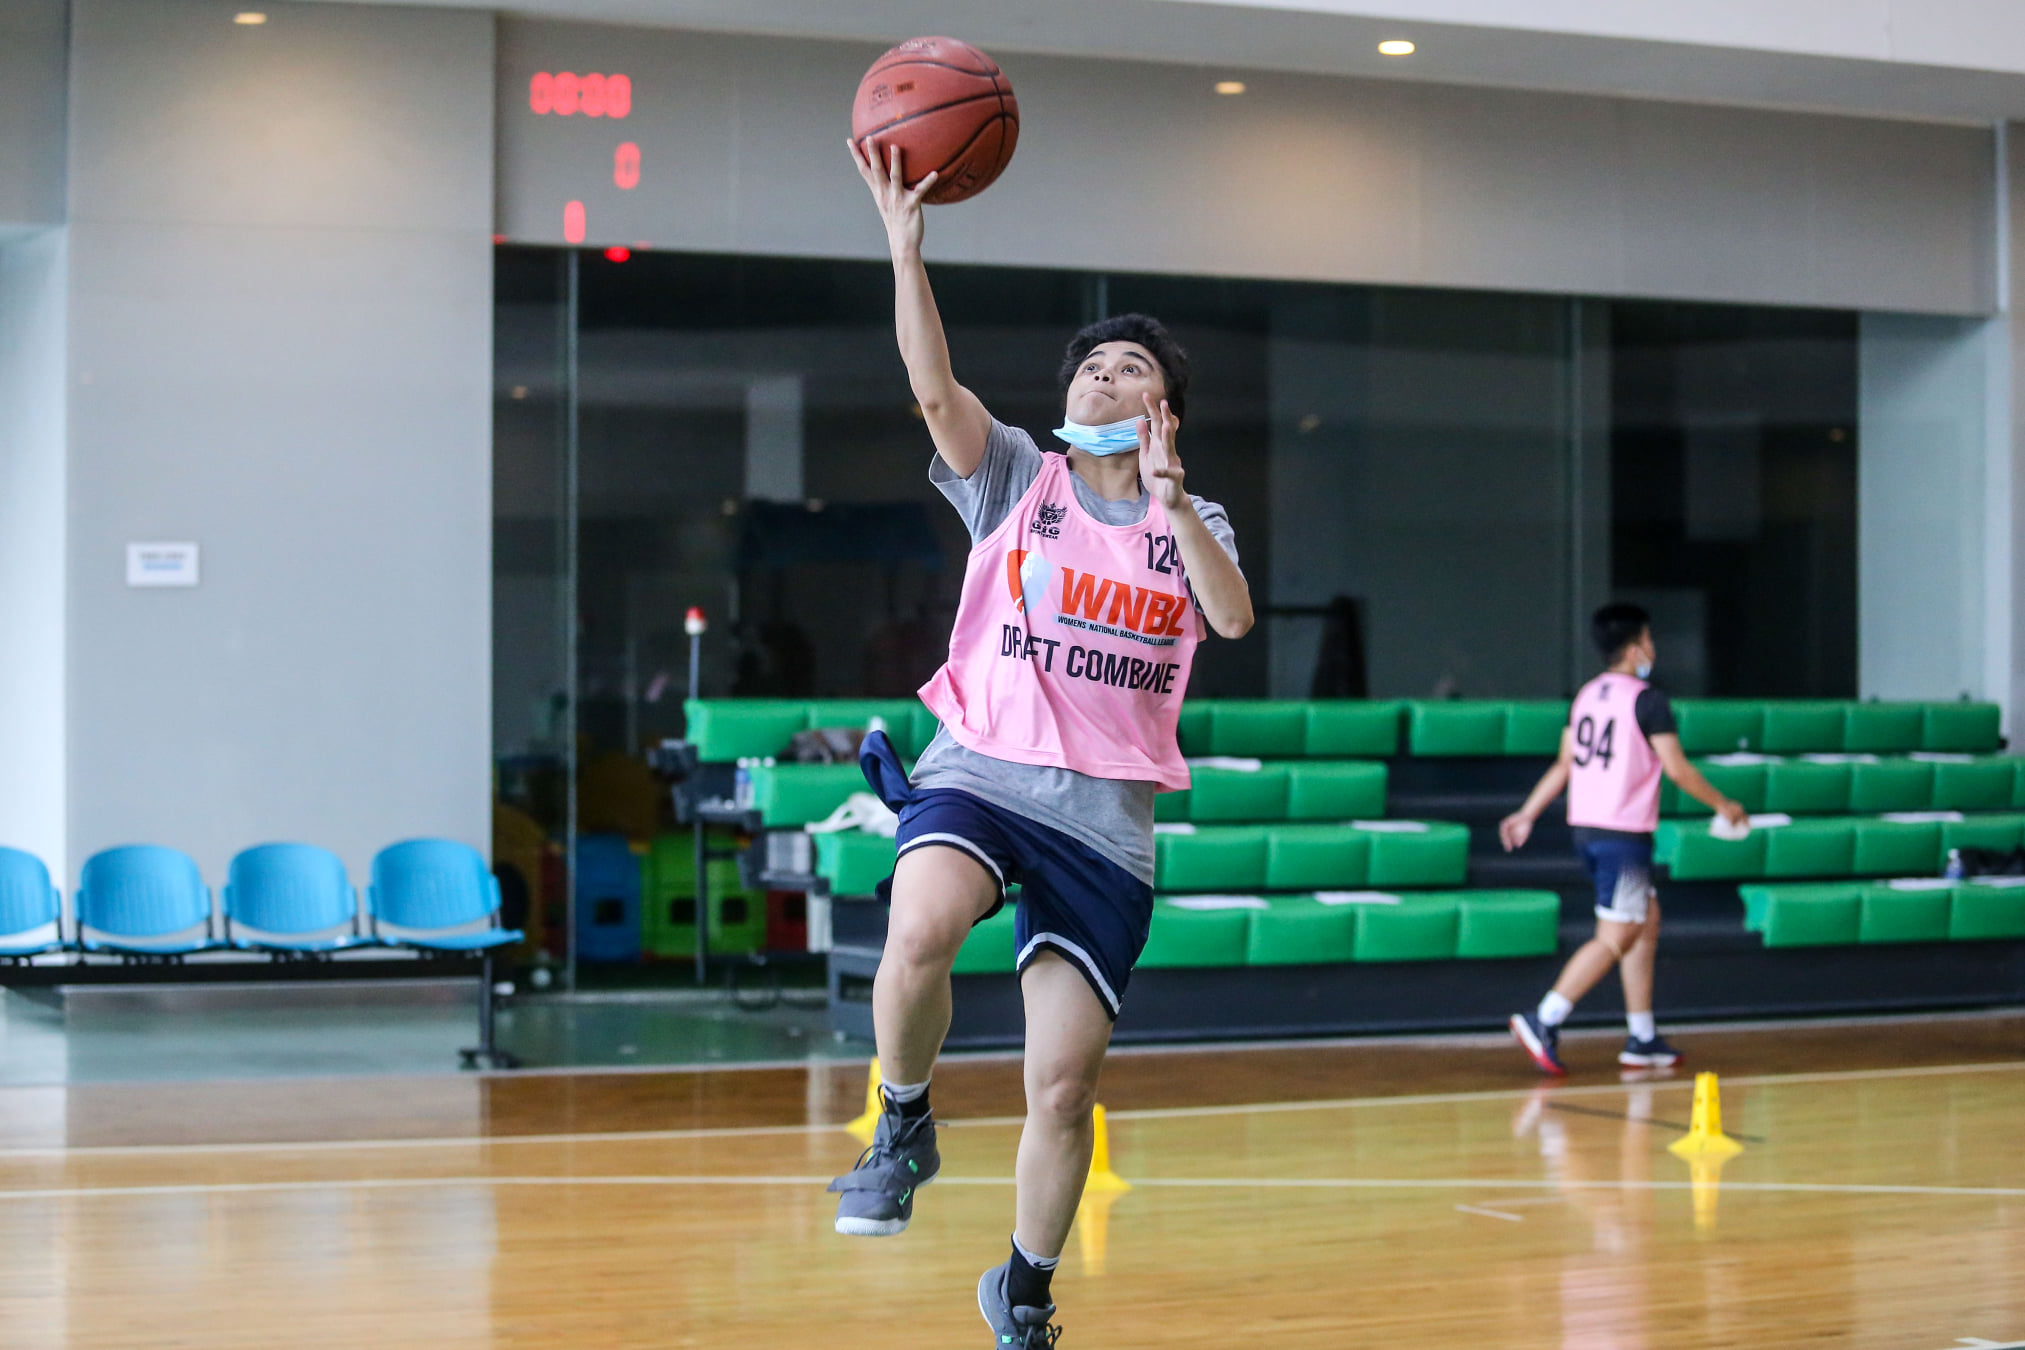 2020-WNBL-Draft-Combine-Fille-Claudine-Cainglet Dr. Fille Cainglet embraces pressure of being a role model Basketball NBL News  - philippine sports news